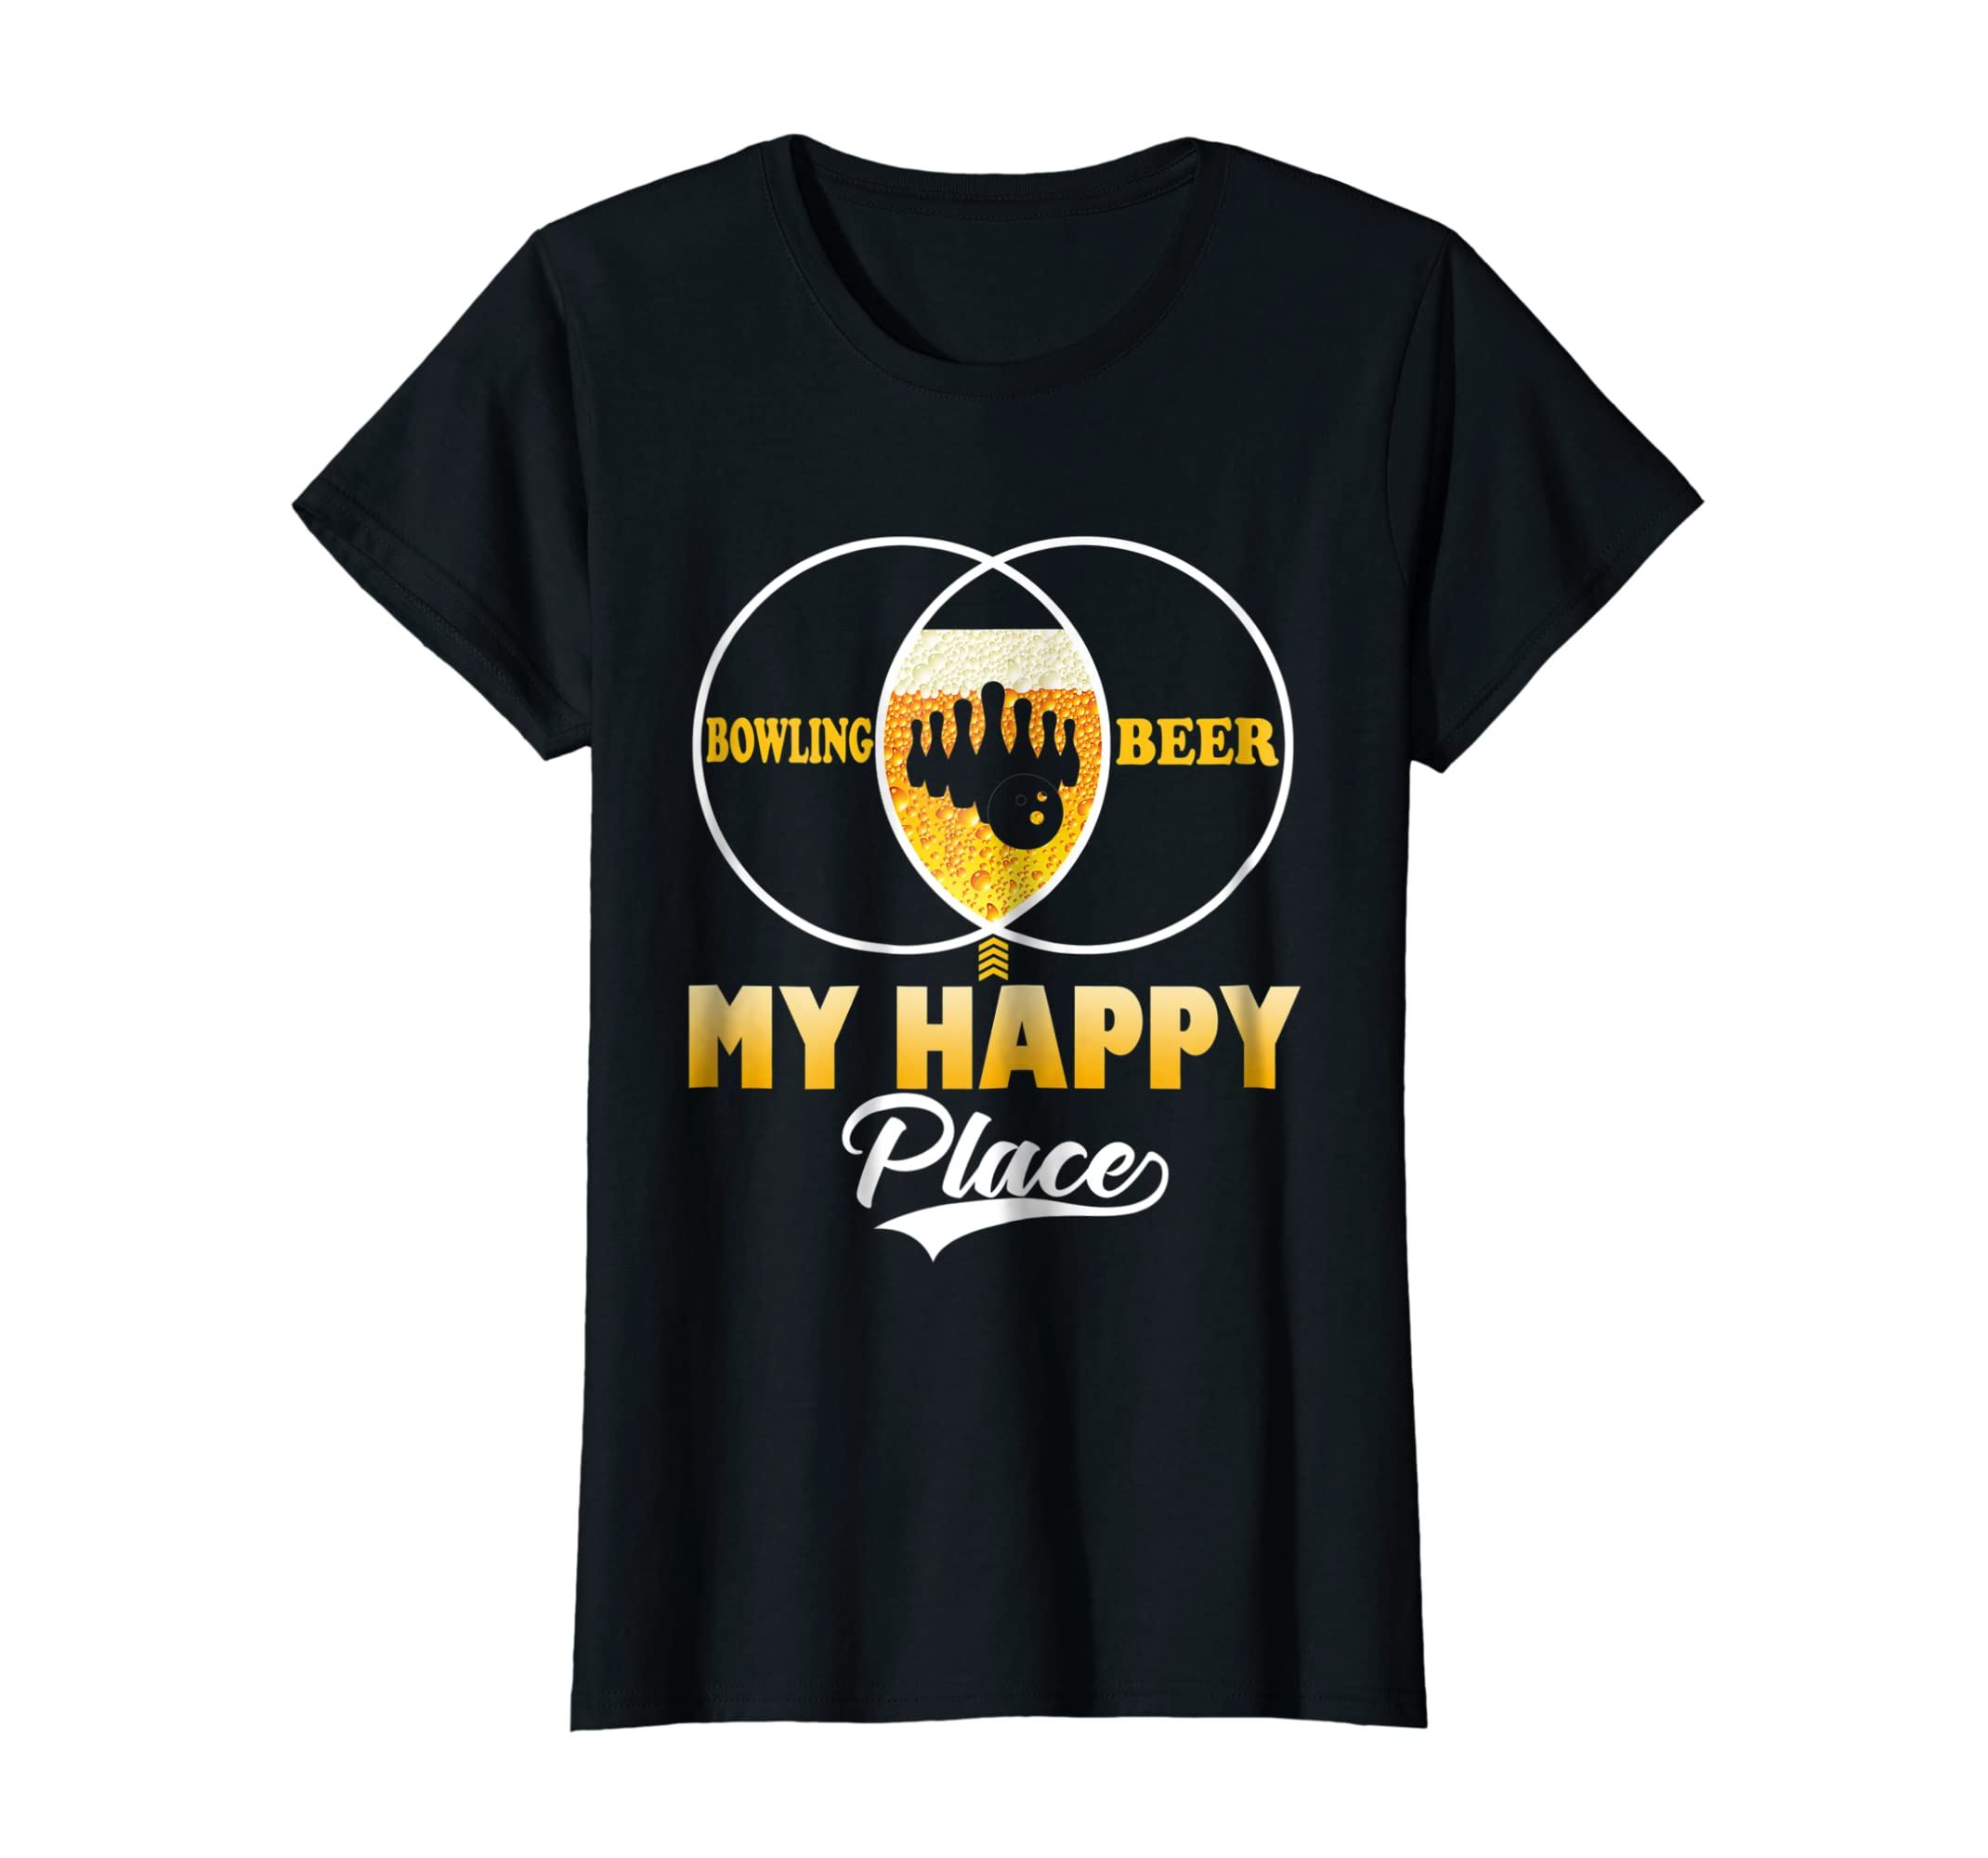 Bowling Beer My Happy Place Funny T Shirt Perfect Gift Tee